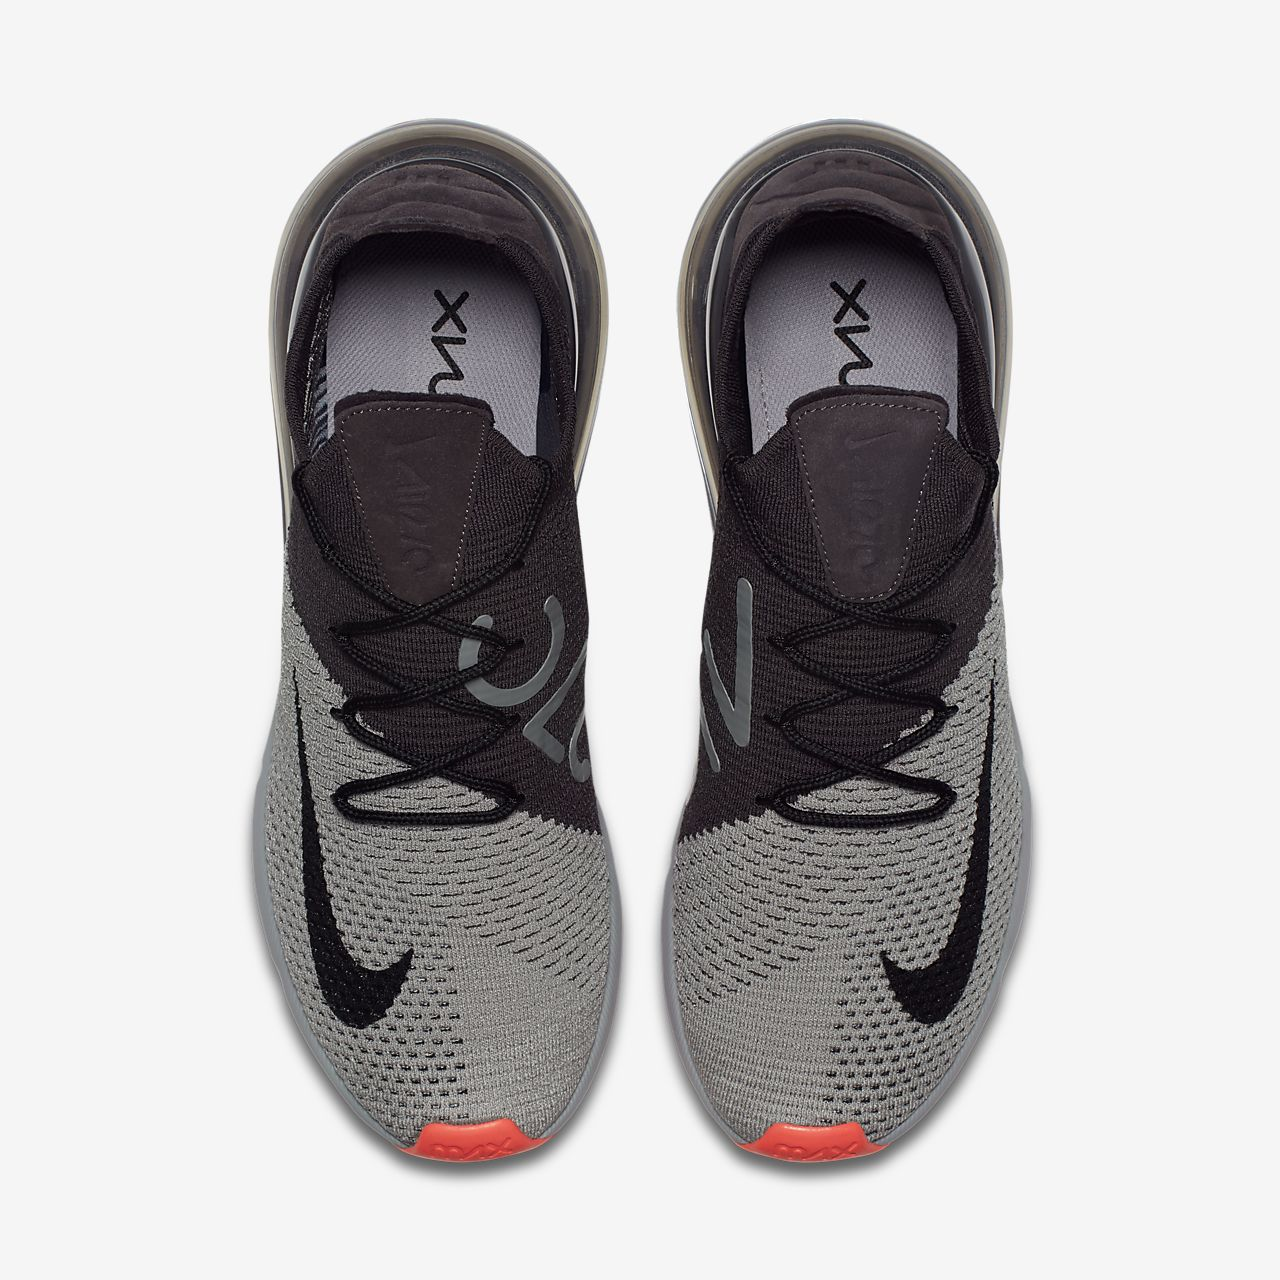 08f77720d55 Chaussure Nike Air Max 270 Flyknit pour Homme. Nike.com FR